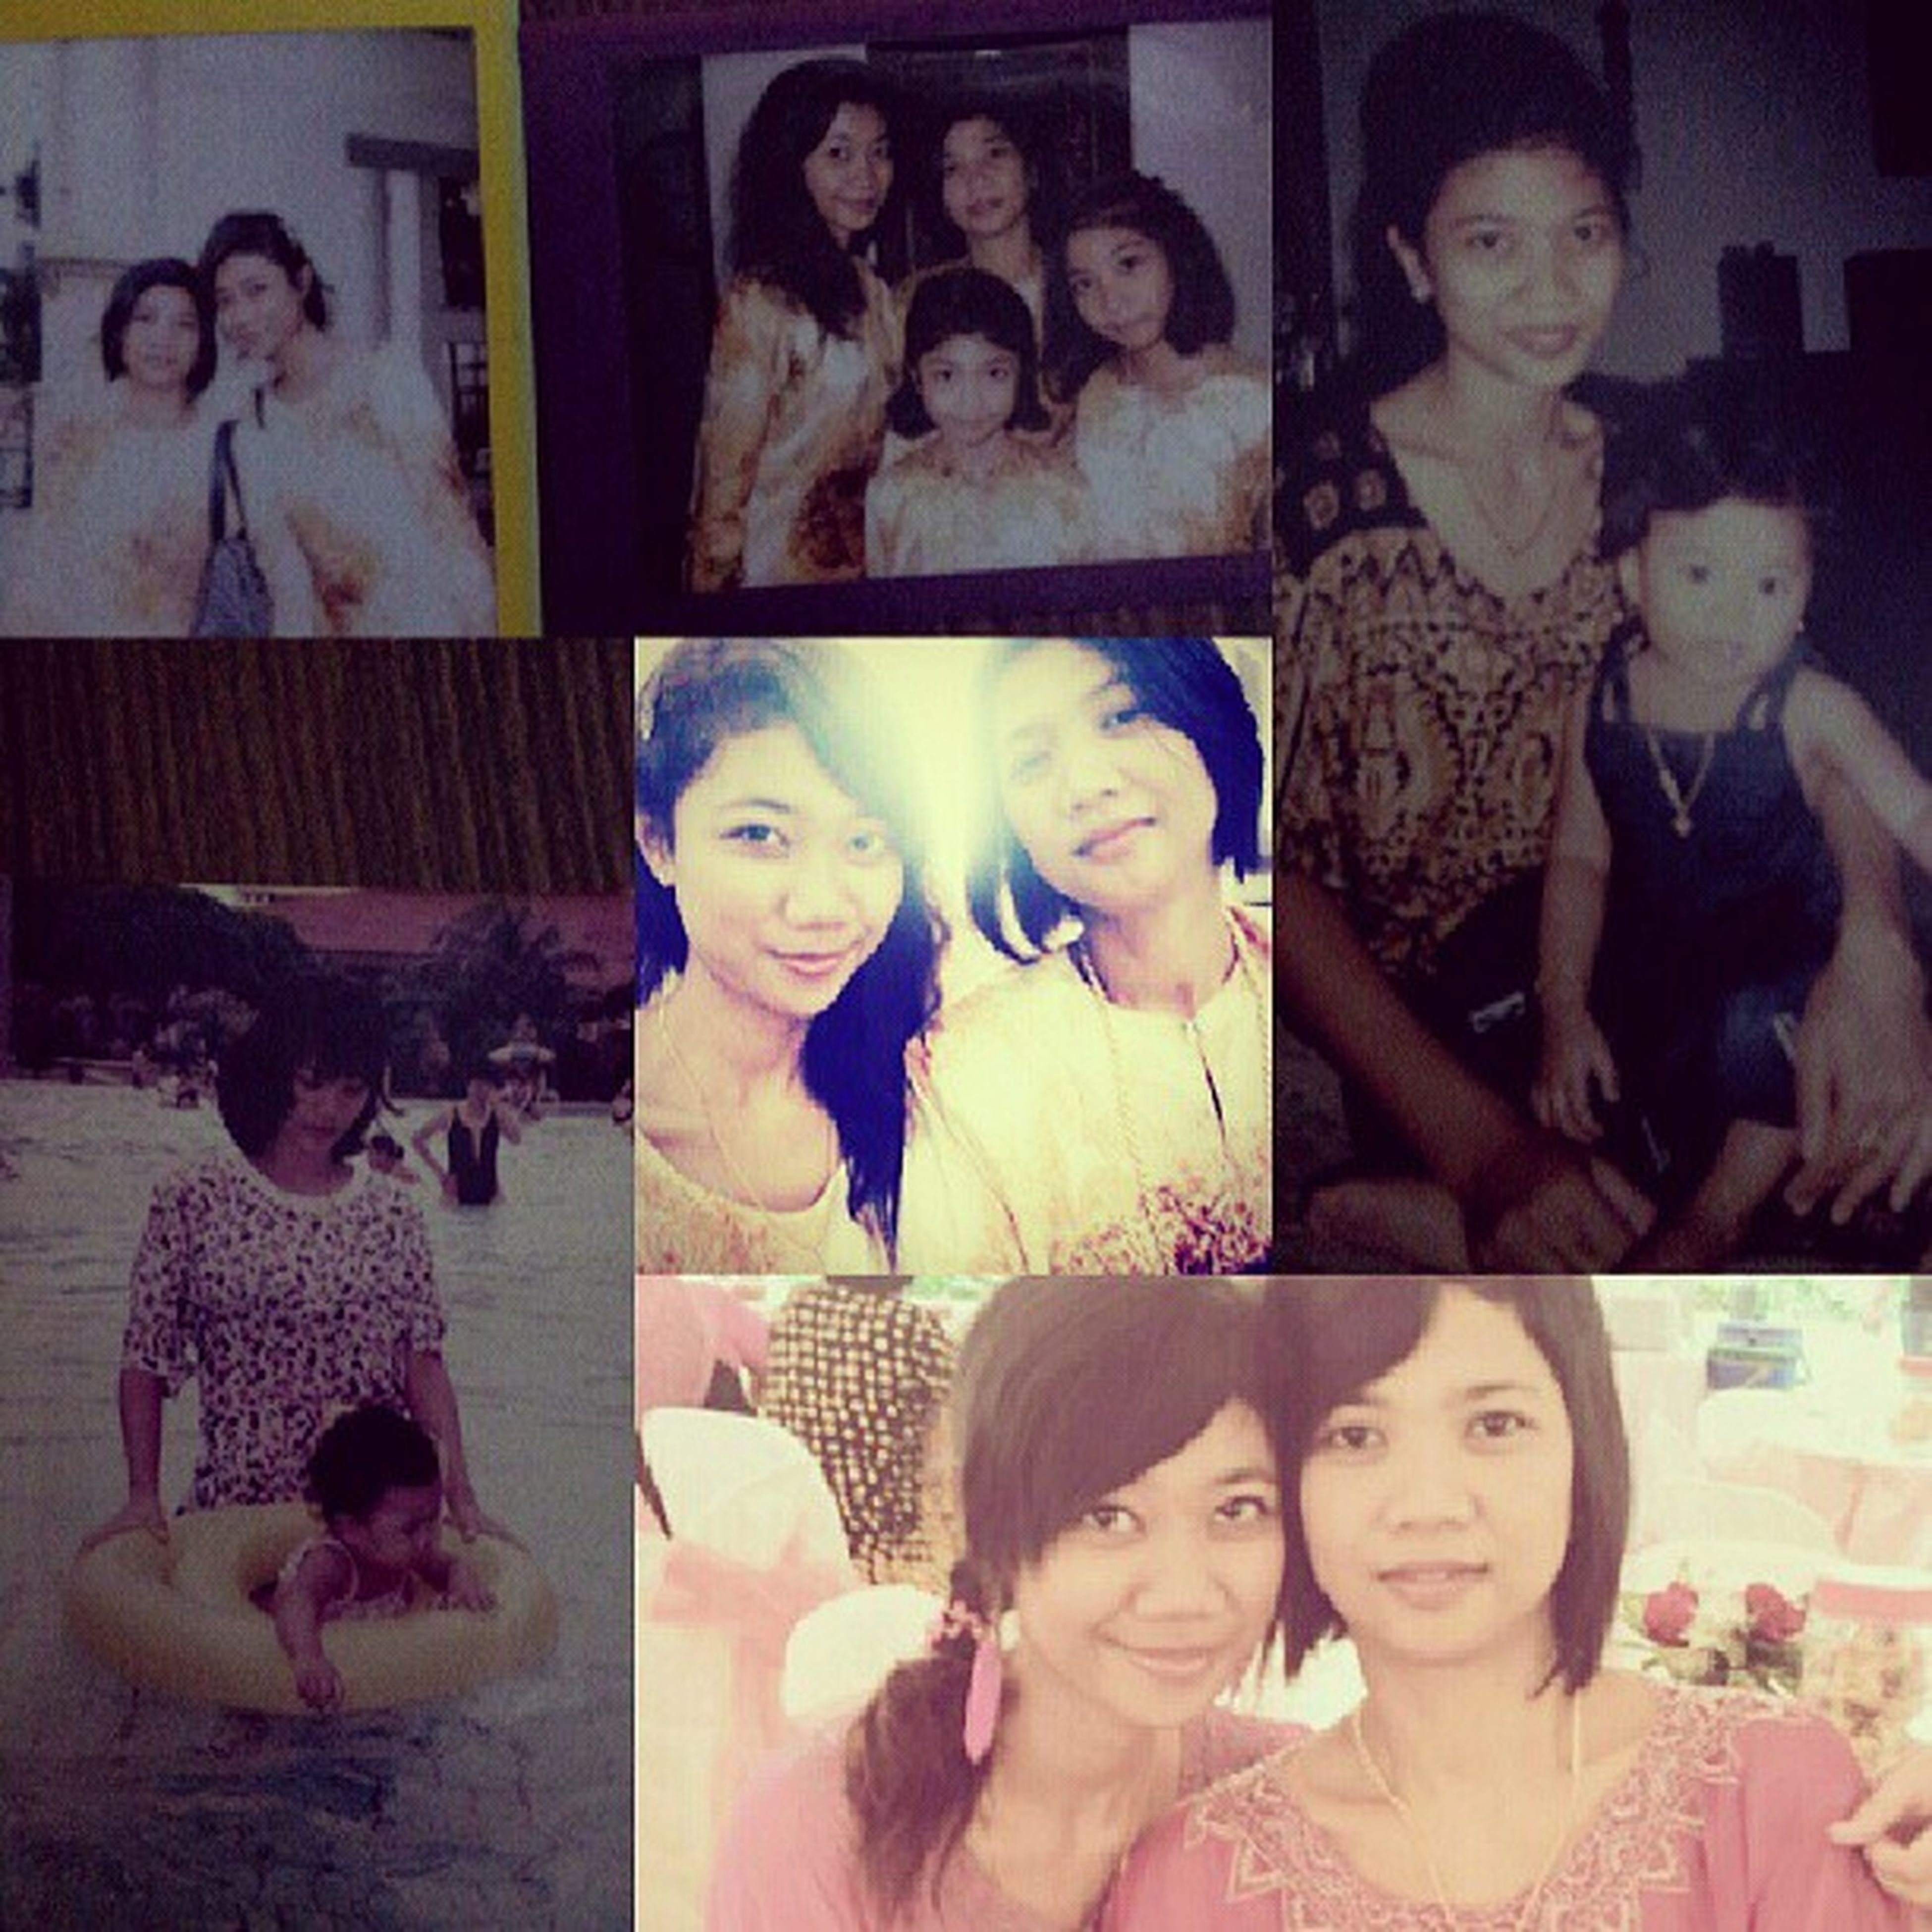 Dear Mama; thank you for taking care and loving me for the past 217 months, including the 9 months when you had to carry me around in your womb. Thank you for being so patient with me even though I can be pretty stubborn at times. Thank you for being my pillar of strength. Thank you for being my best friend, my soulmate and everything. You're the one that I always share every single little thing to, and seriously I can never imagine not being with you even for one day. (yes sigh I'll never be able to be independent) Anyways, I love you so so so so much mwa mwa and yay you're the BEST mum for me ♥♡ Happymomsieday Loveyoutotheinfinityandback